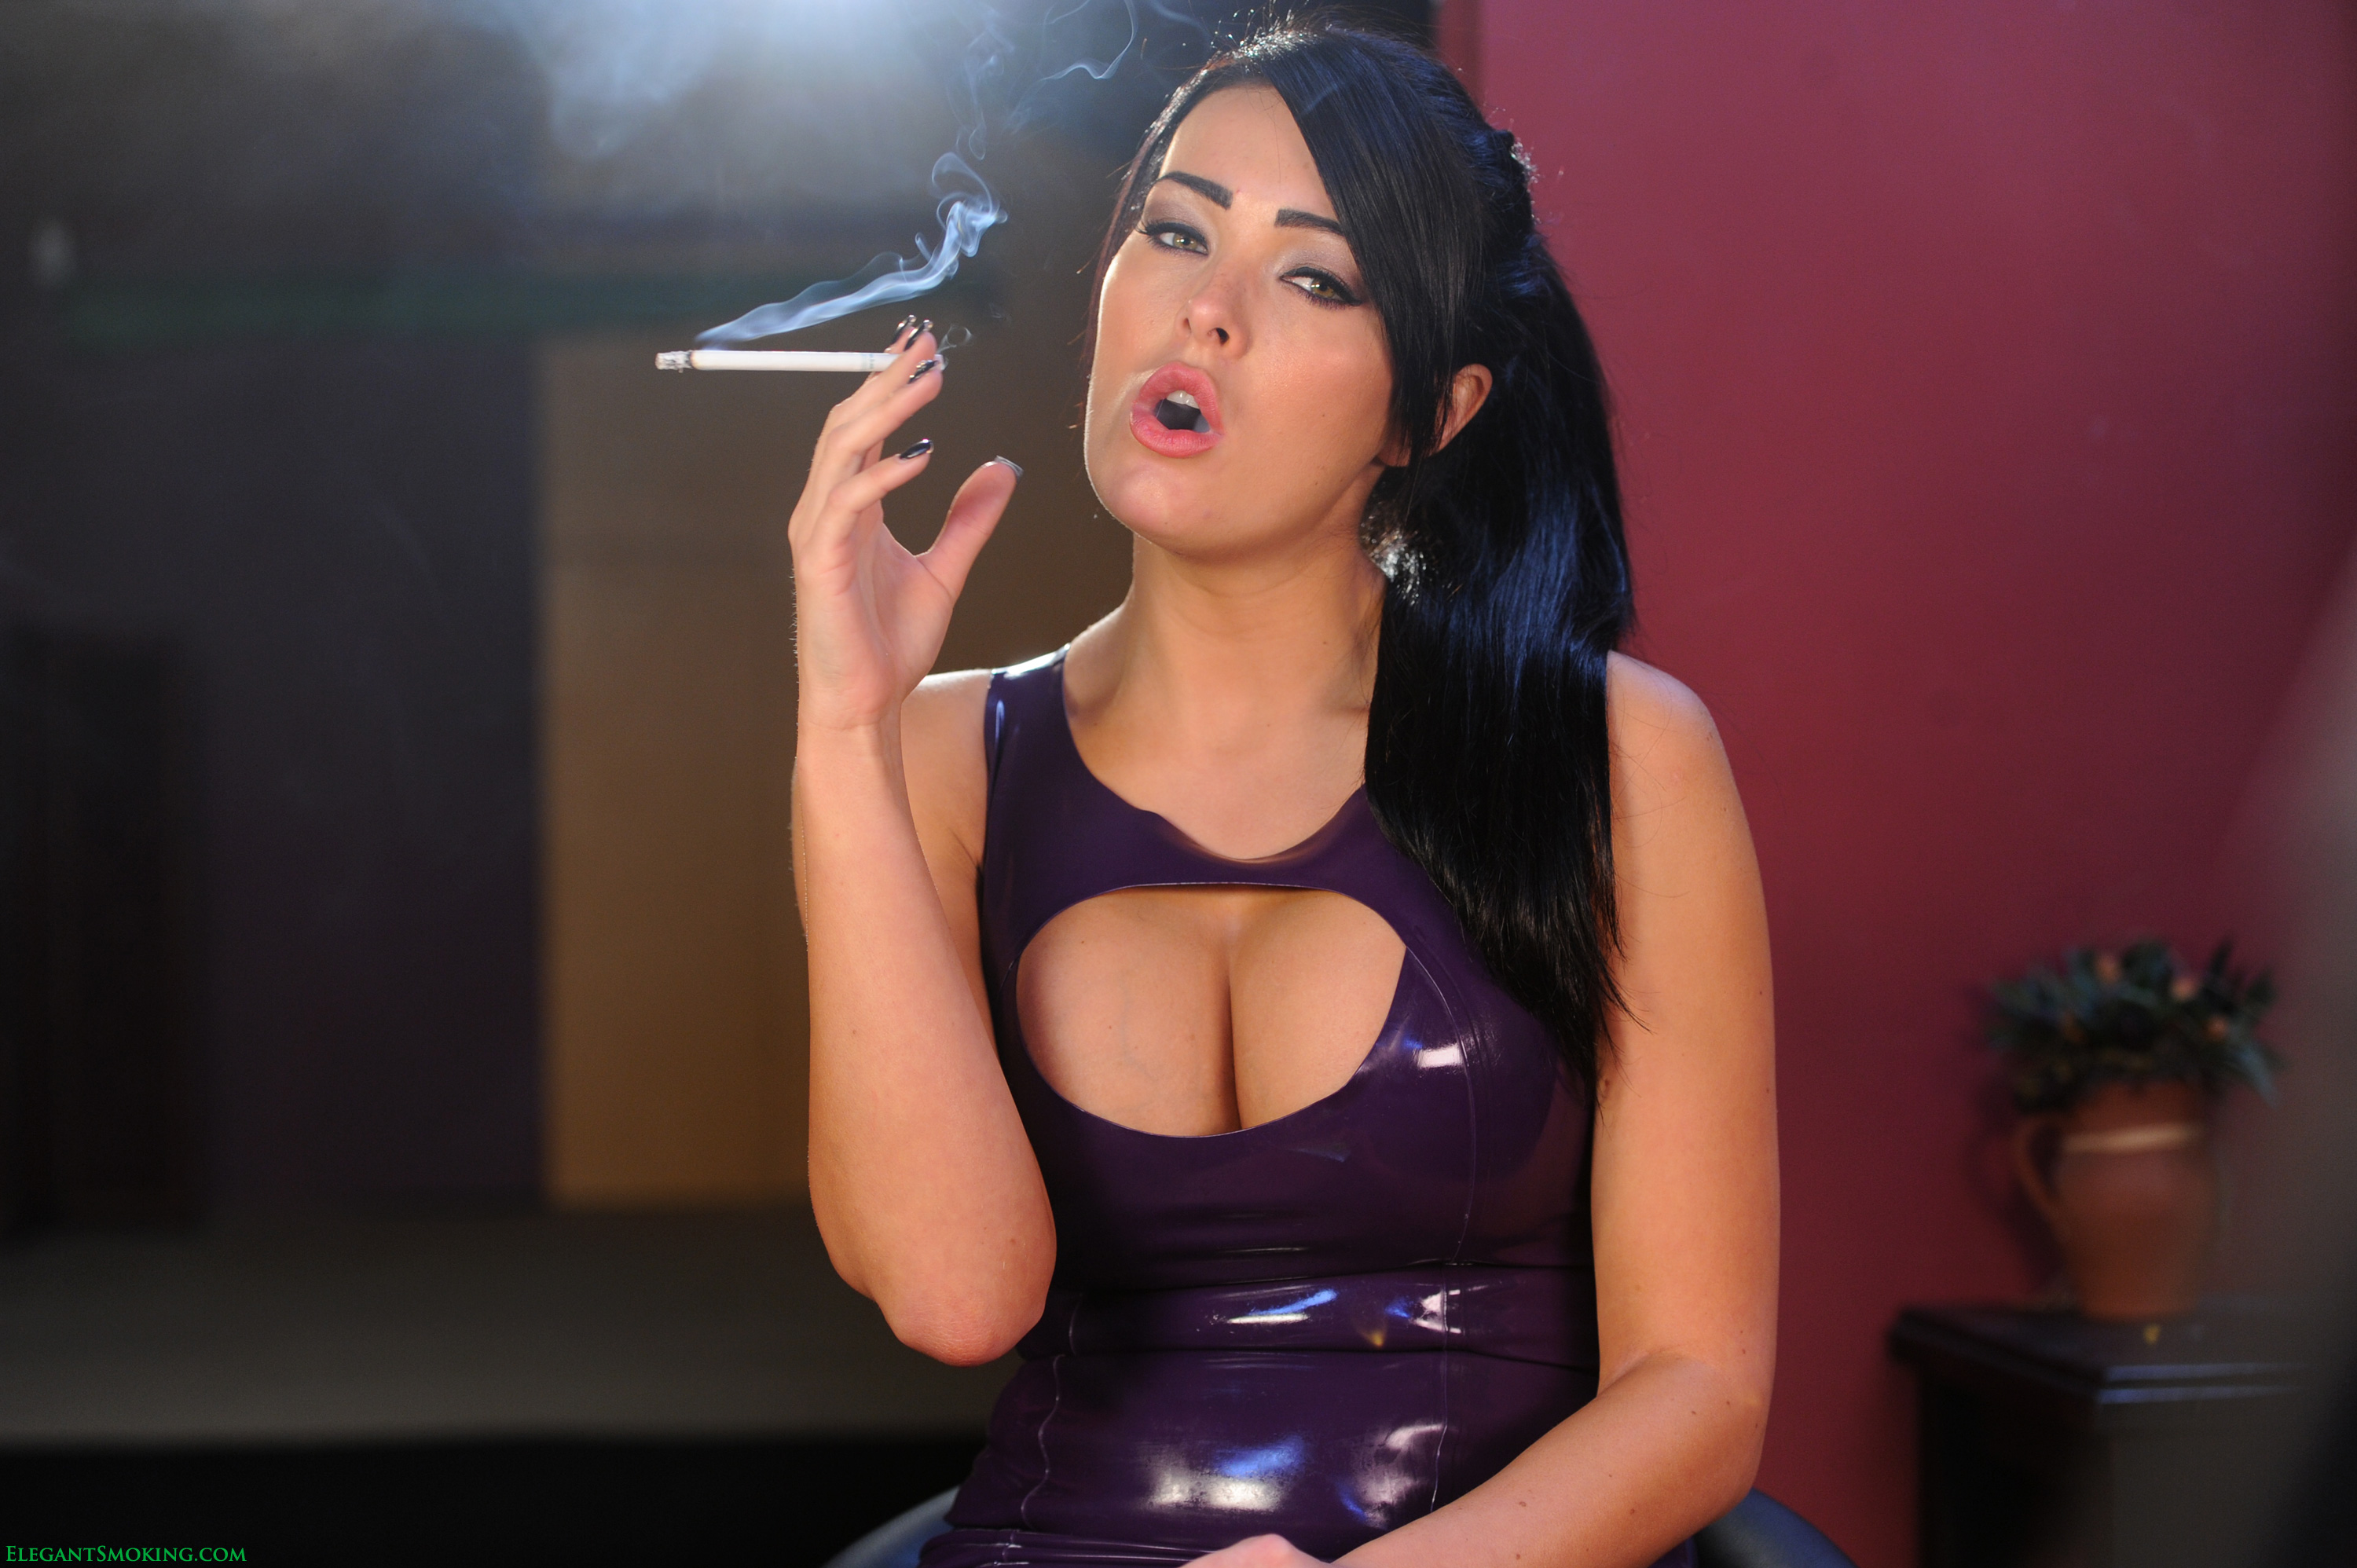 Smoking hot sasha grey in action